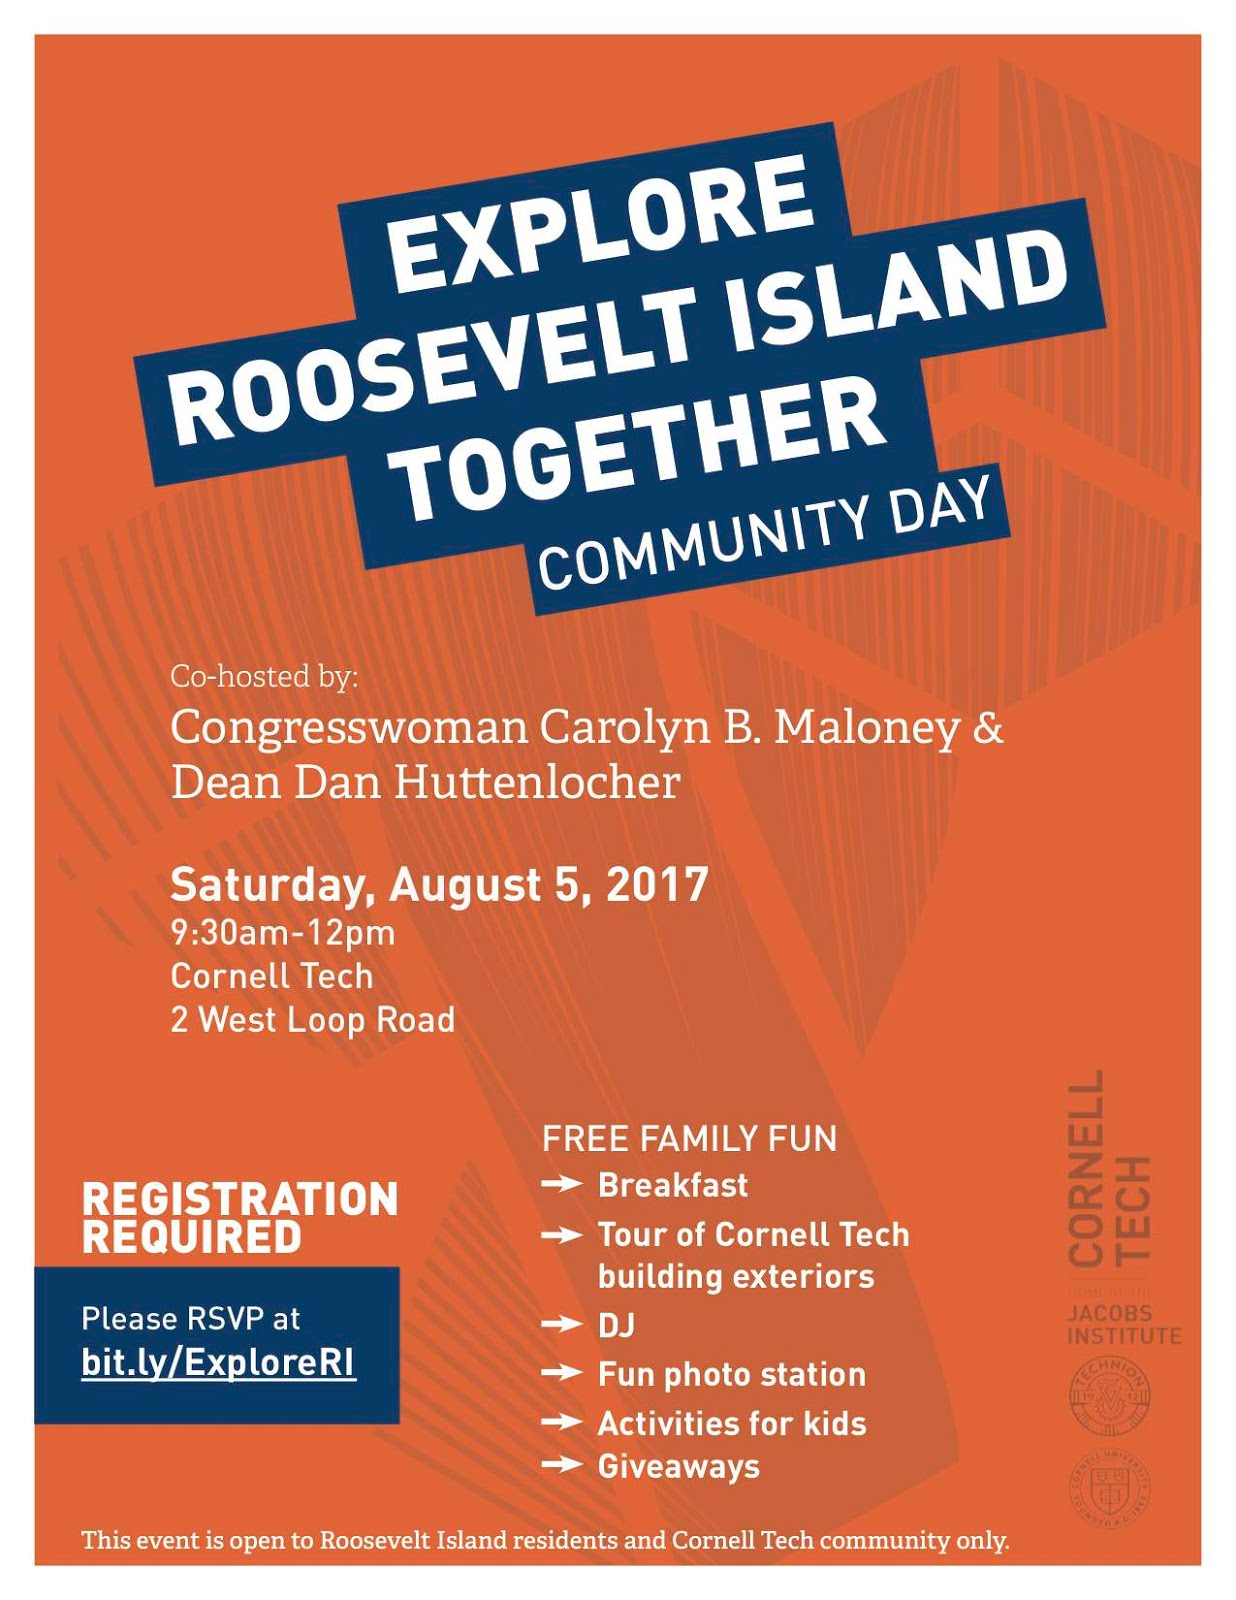 You're Invited To August 5 Cornell Tech Explore Roosevelt Island Together Community Day